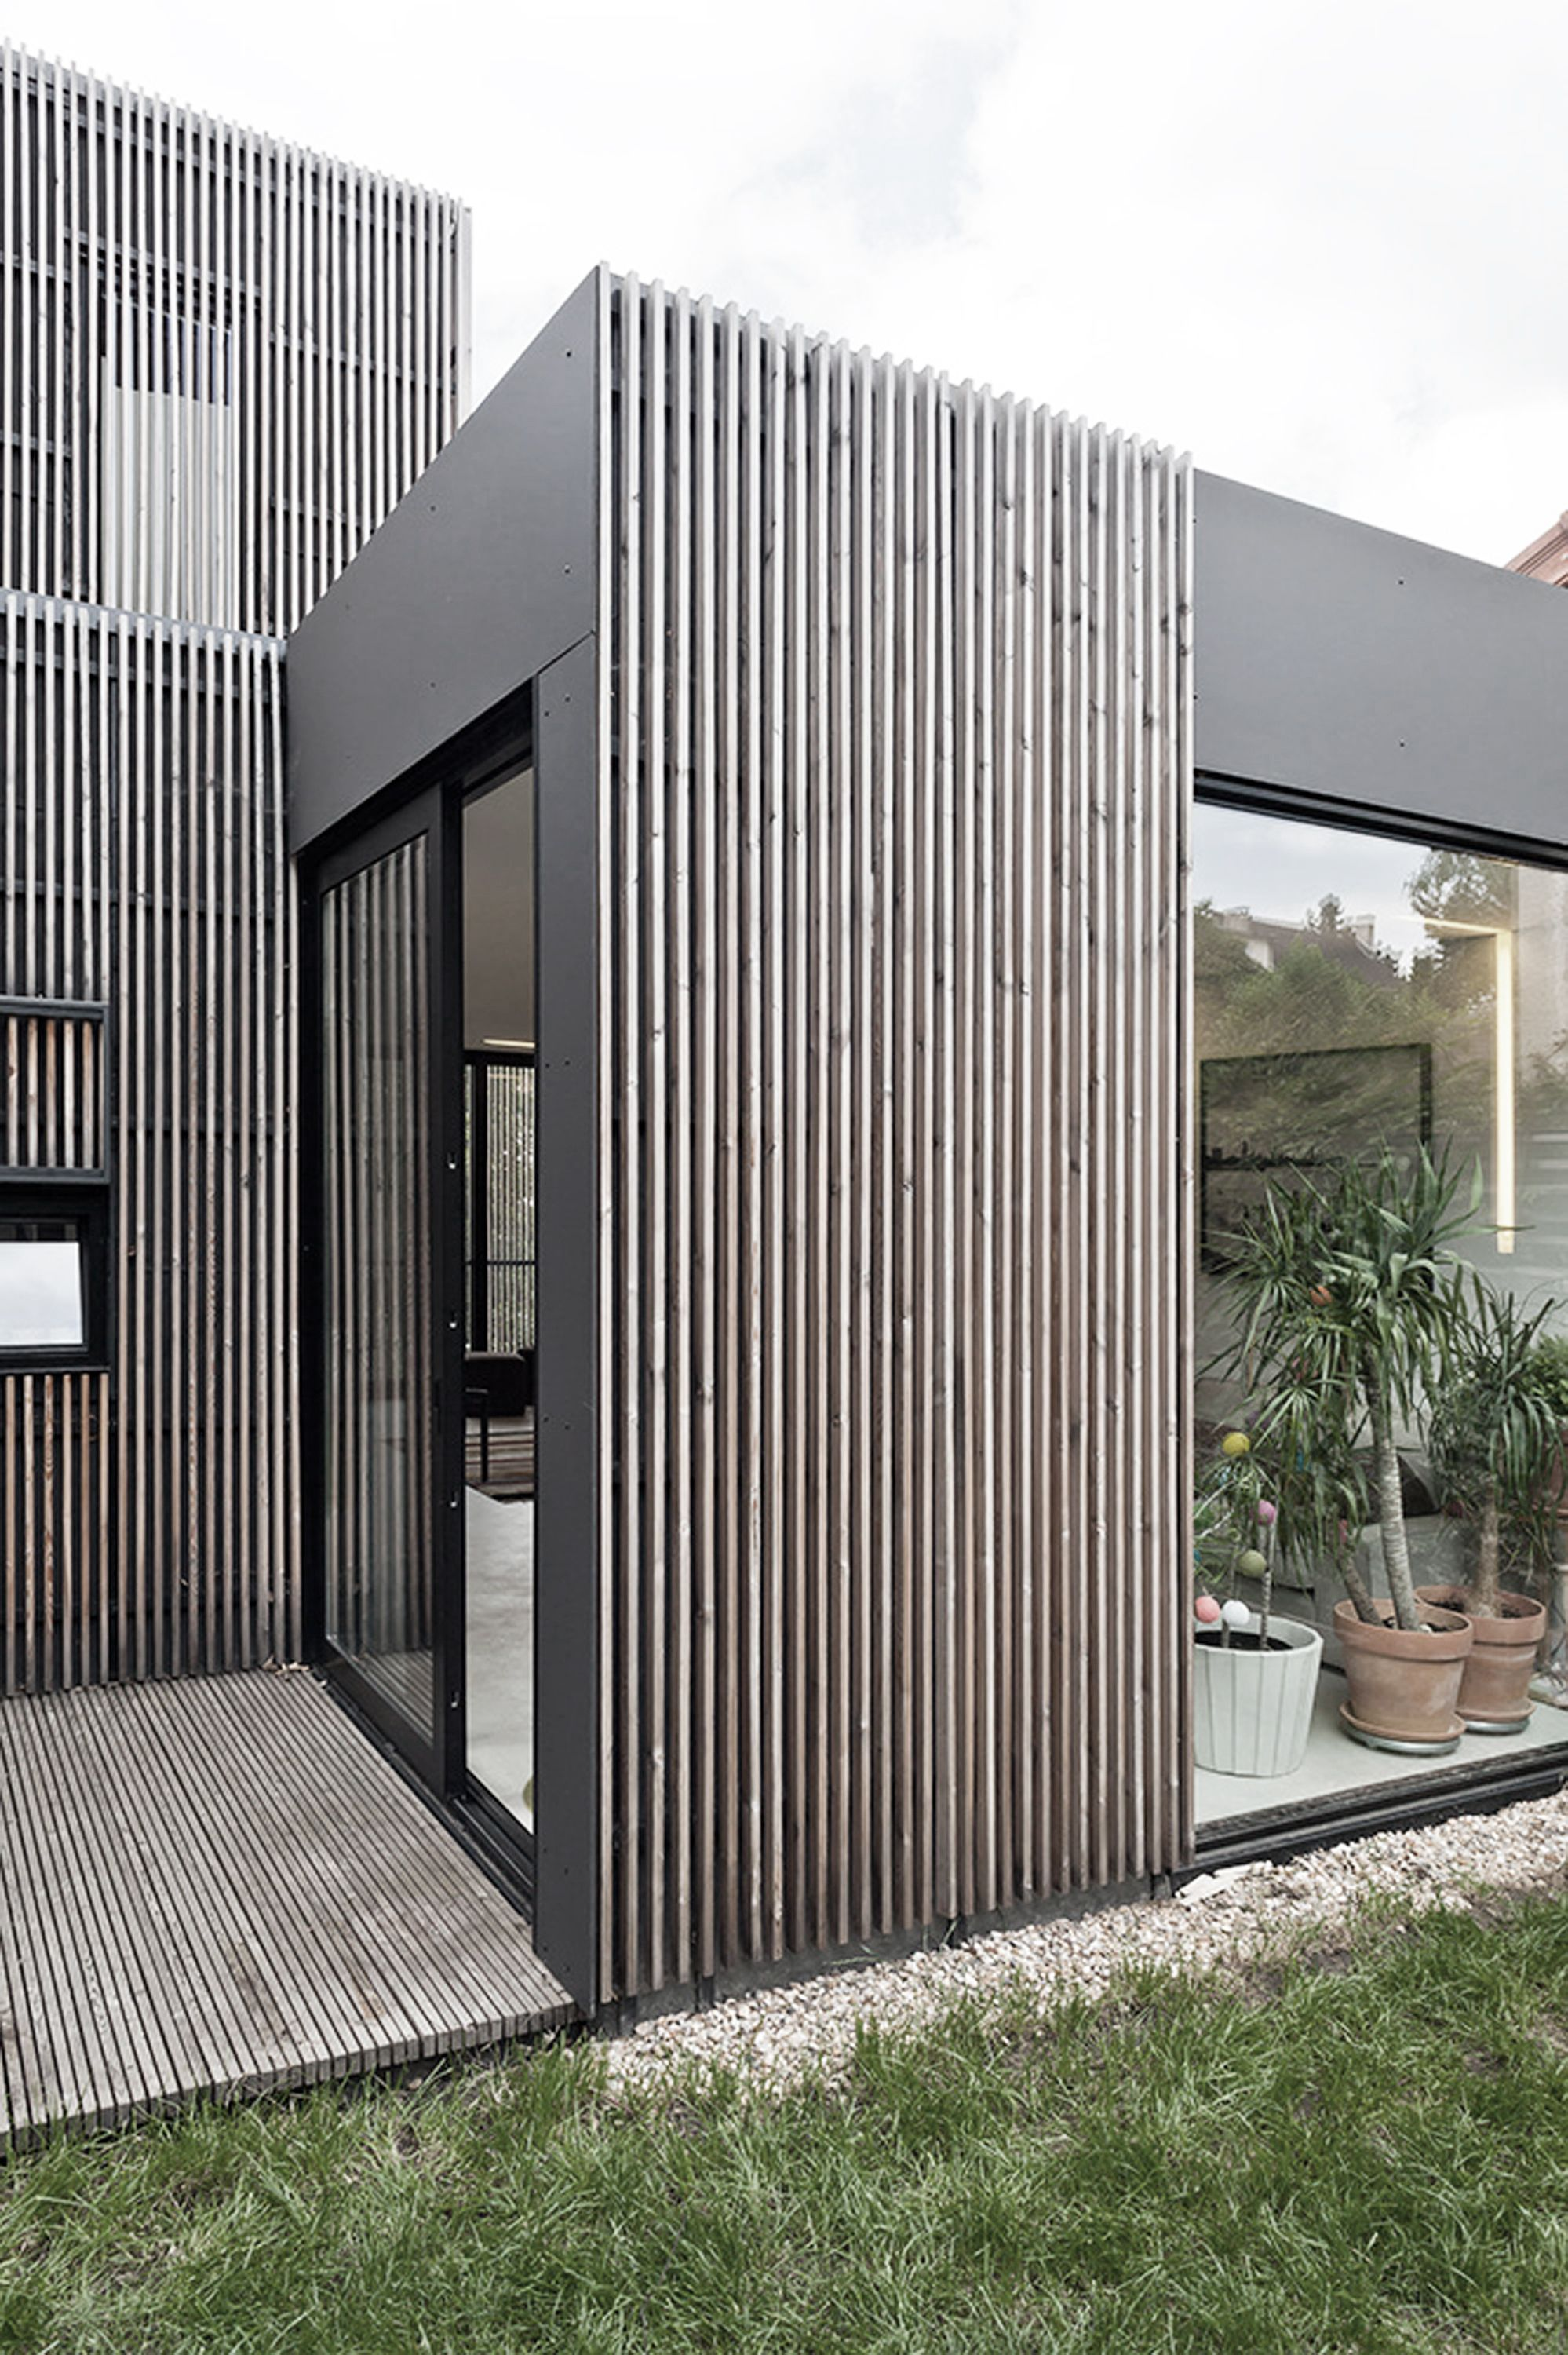 Gallery Of Wooden Frame House / A + Samuel Delmas   13. Wood Cladding  ExteriorTimber ...